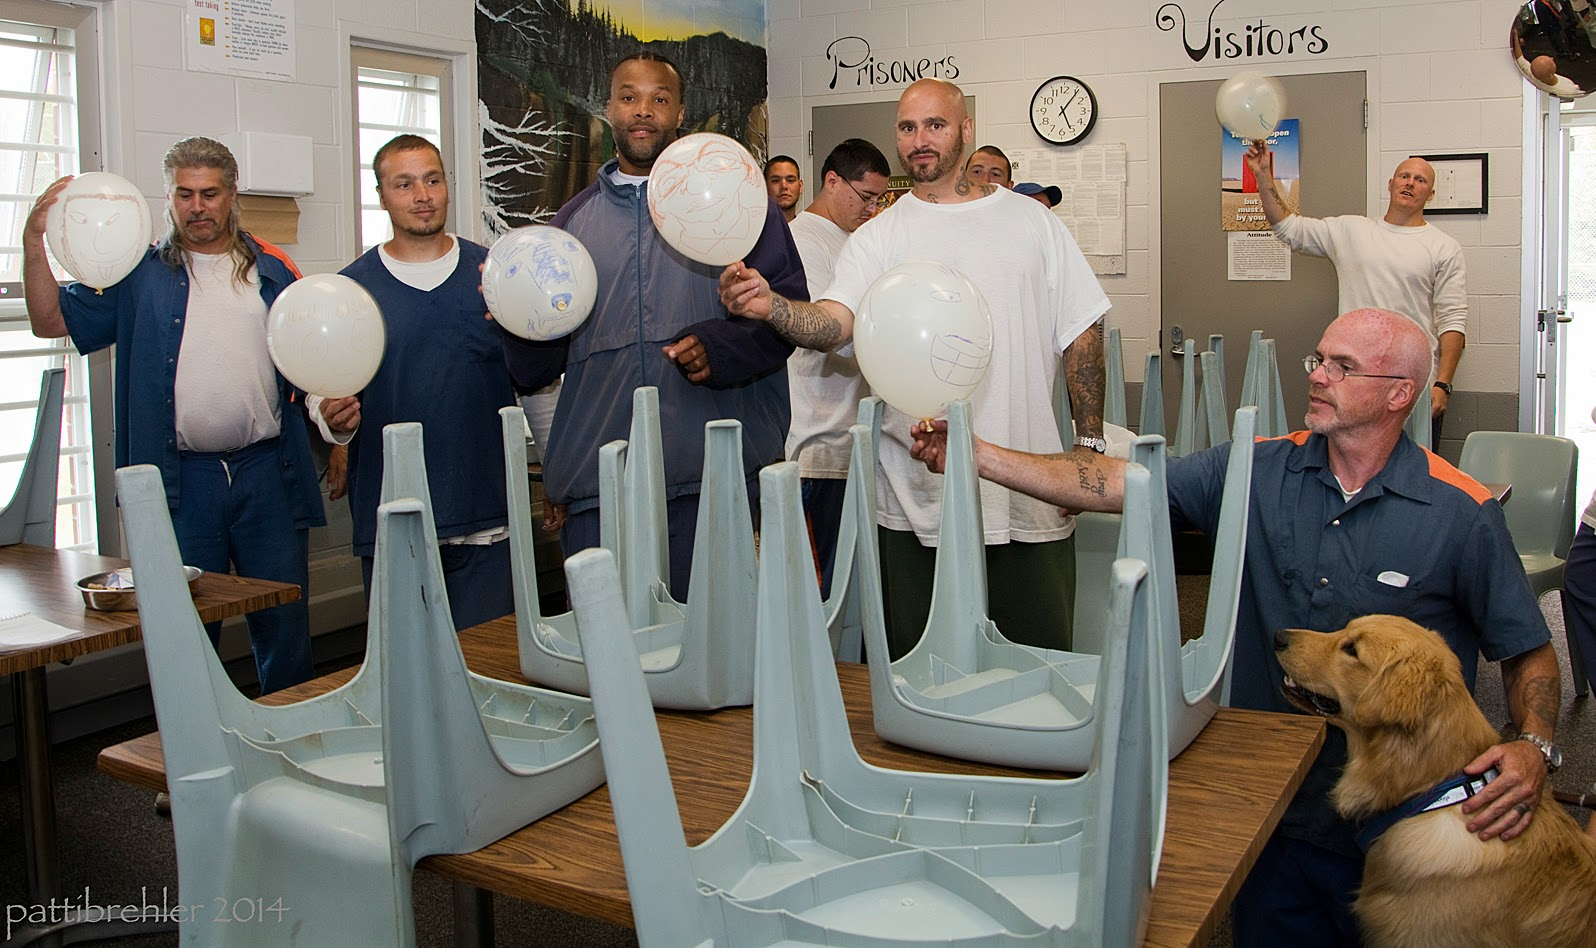 Six men are holding up white balloons with faces drawn on them. Four of the men are standing behind a table with four light blue plastic chairs upside down on the top of the table. The fifth man is behind the table too, but is sittin down. He has his left hand on the shoulder of a golden retriever who is sitting in front of him. In the background behind this man is another man holding a ballon up high.There are a few more men behind the group, not very muc in view. The are in a room with white brick walls.